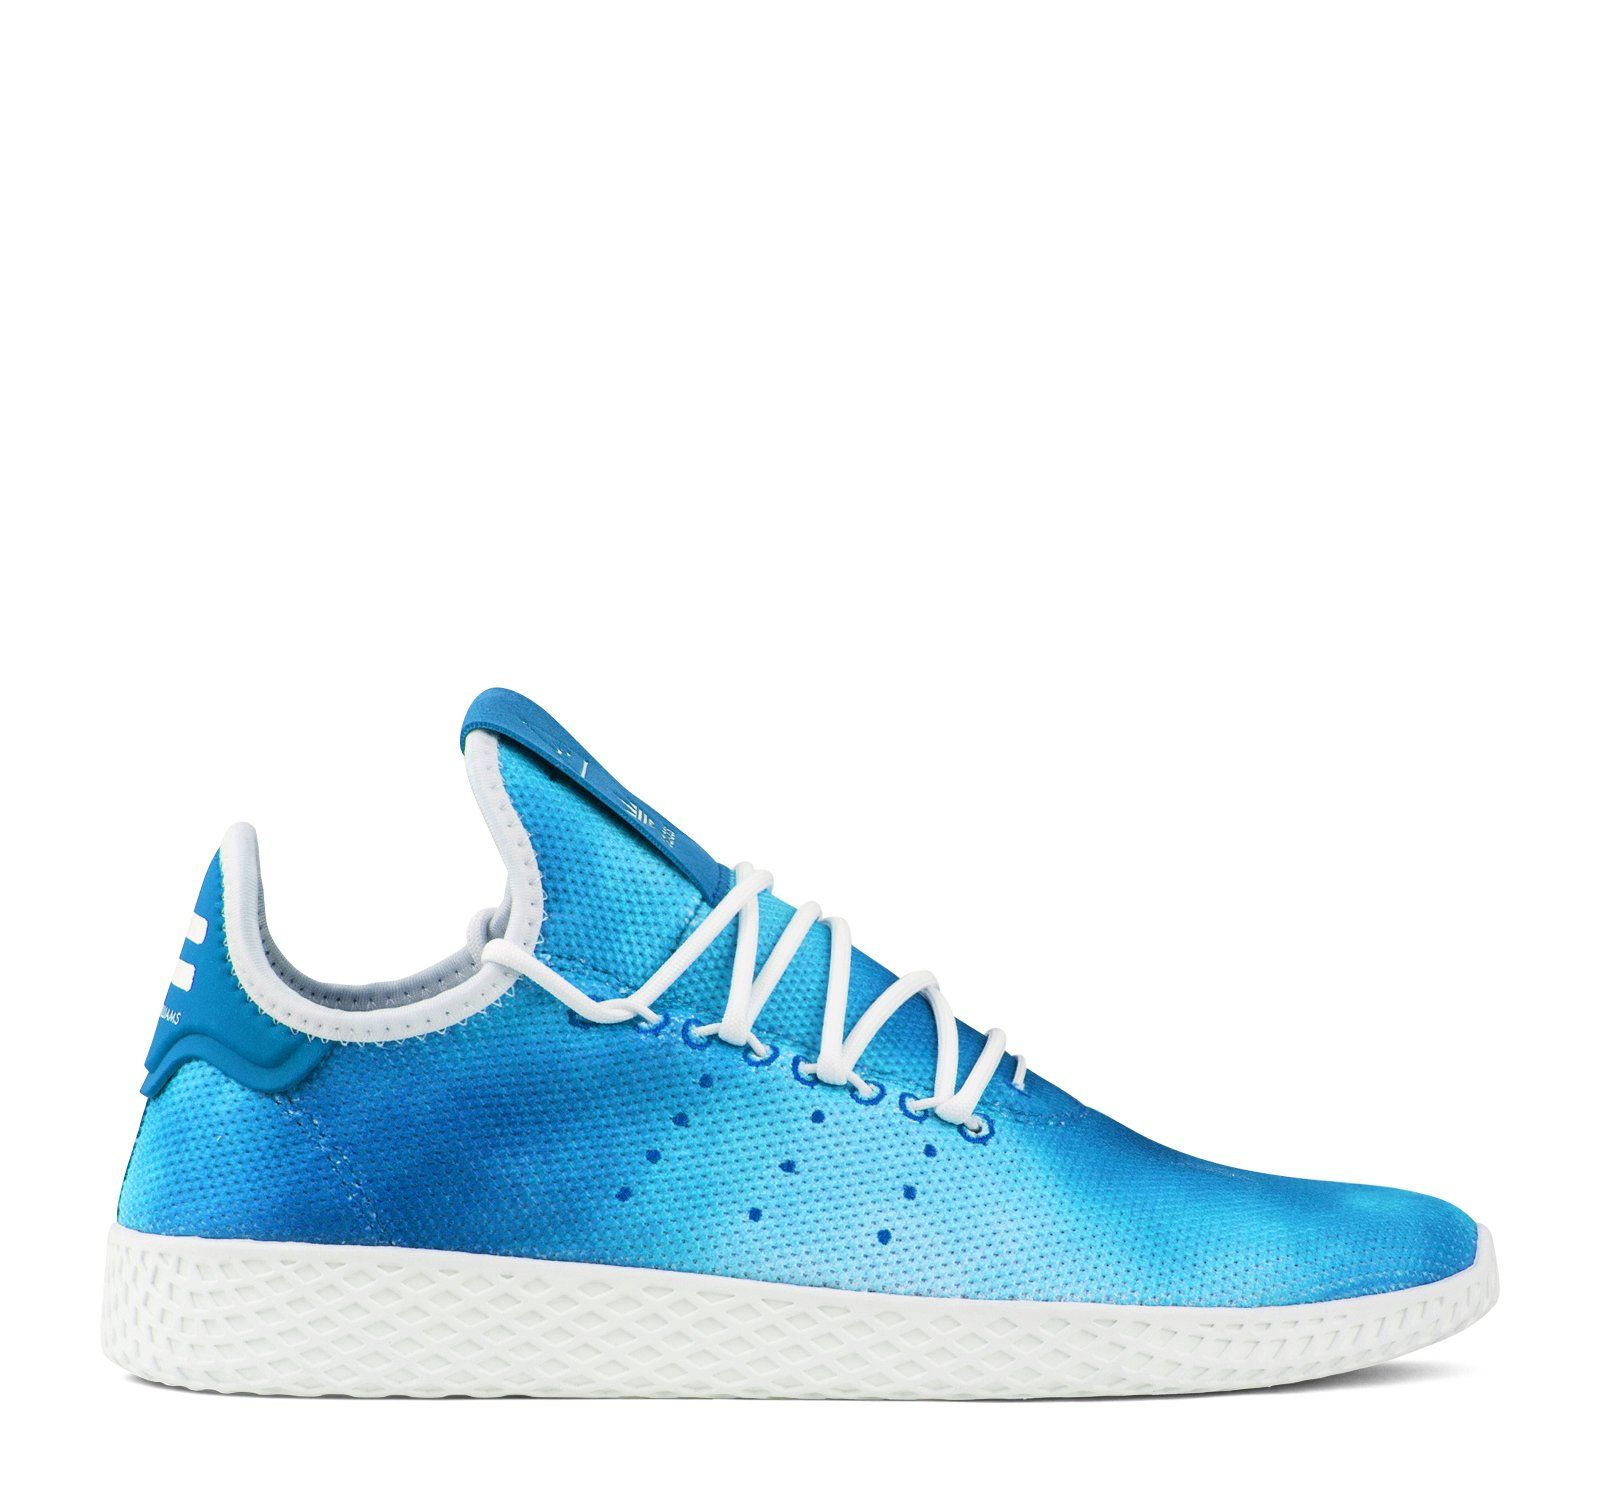 0112ddc3eeca1 Adidas Originals Pharrell Williams Tennis Hu DA9618 Men s - Blue White